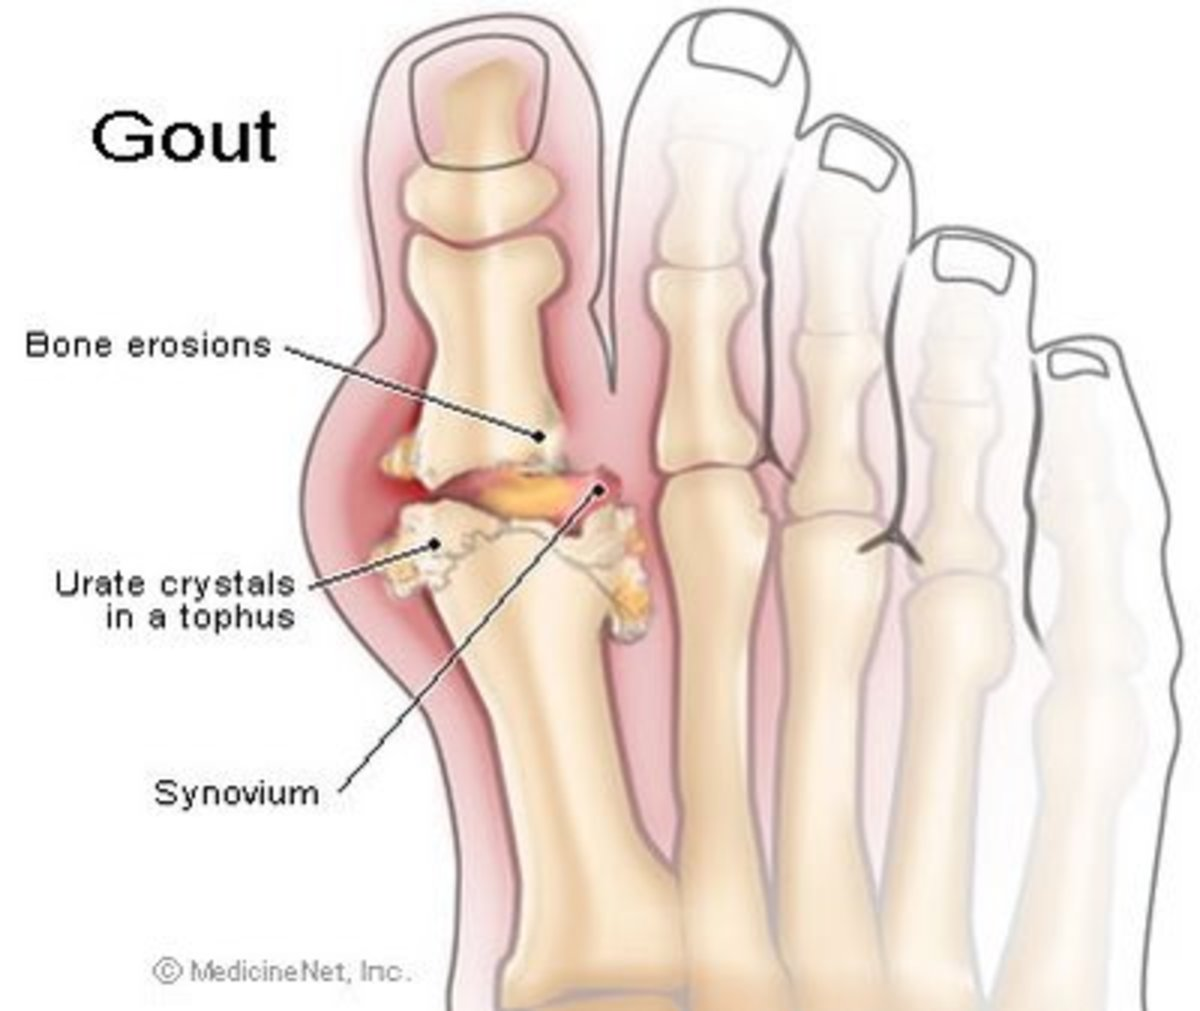 living-with-gout-a-lesson-in-self-discipline